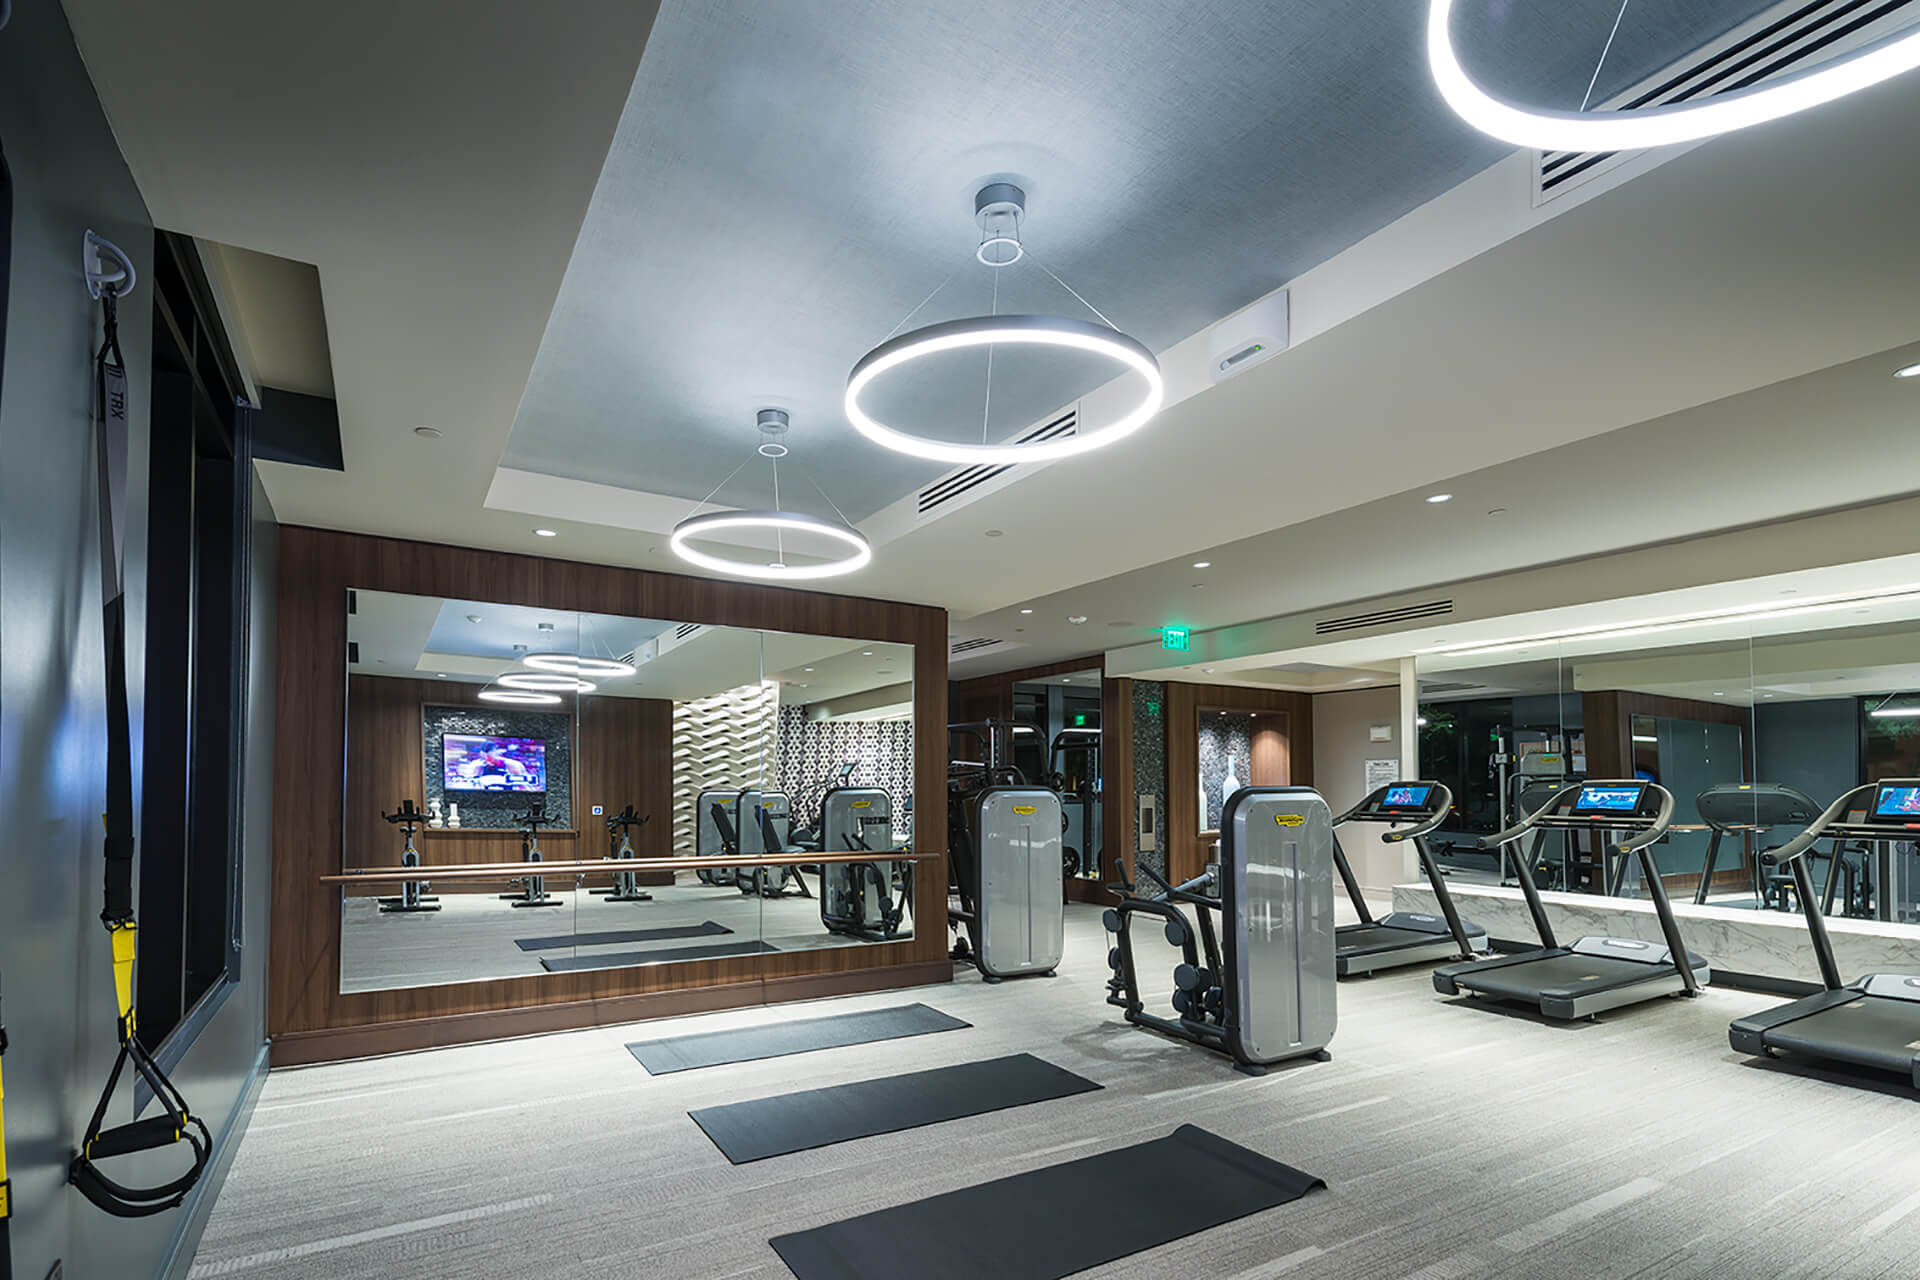 TRX Station in Fitness Center at Cannery Park by Windsor, 415 E Taylor St, San Jose